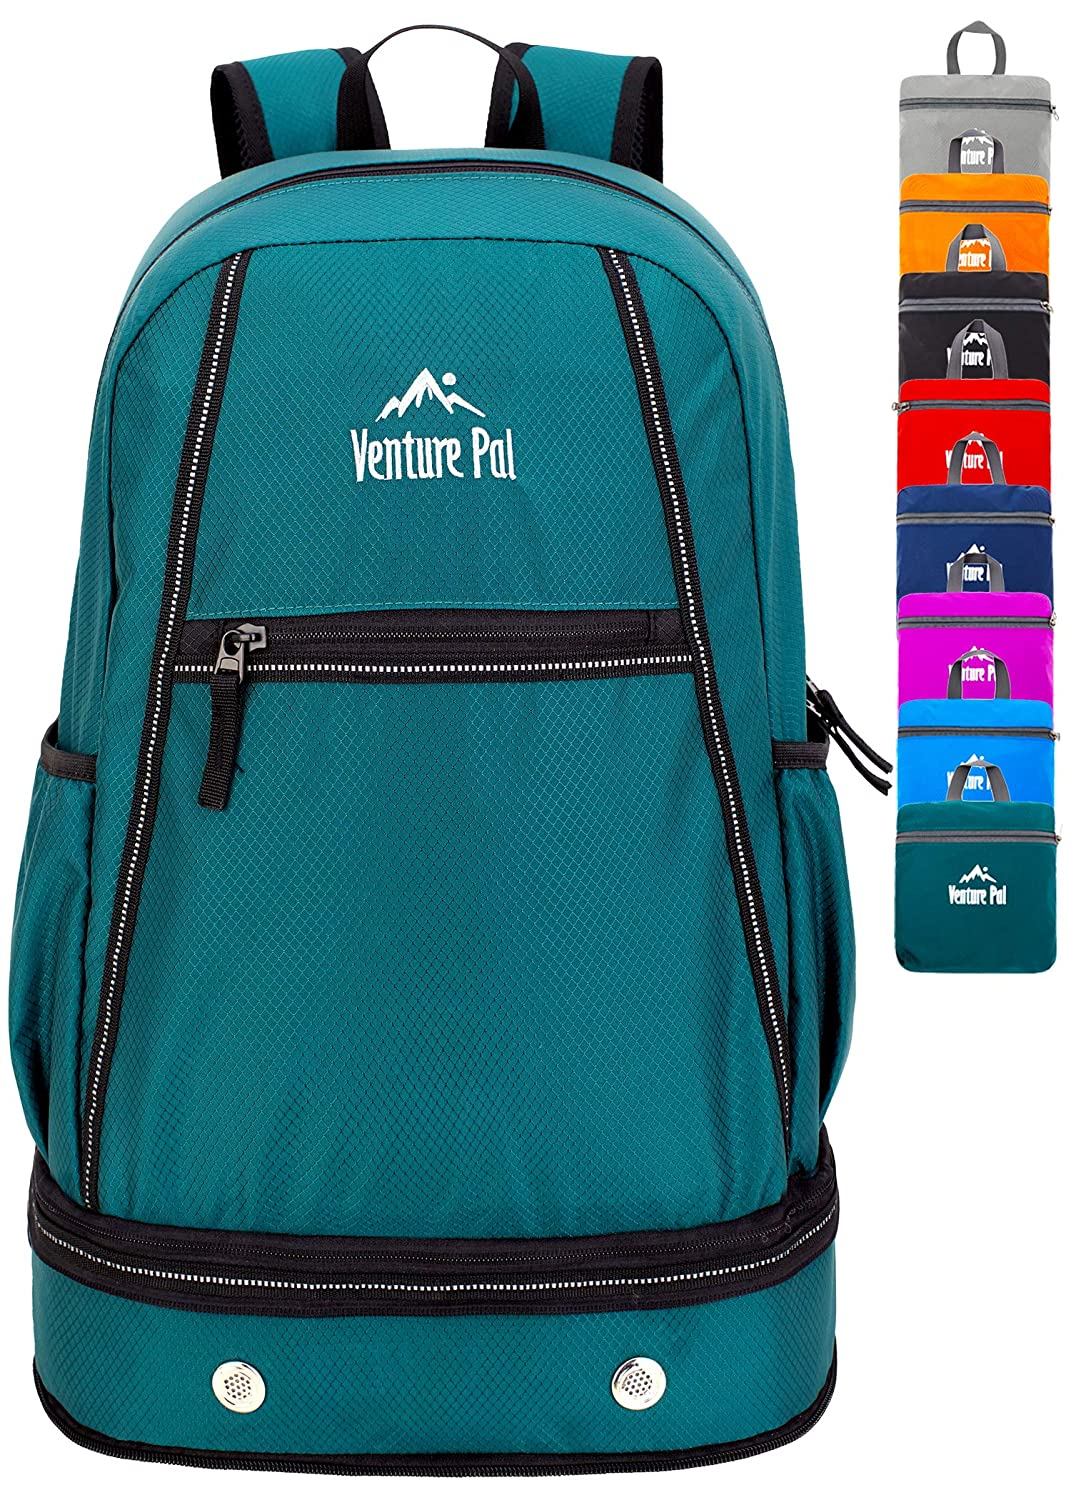 Venture Pal 35L Lightweight Packable Hiking Backpack with Wet Pocket Shoes Compartment Travel Backpack for Men and Women